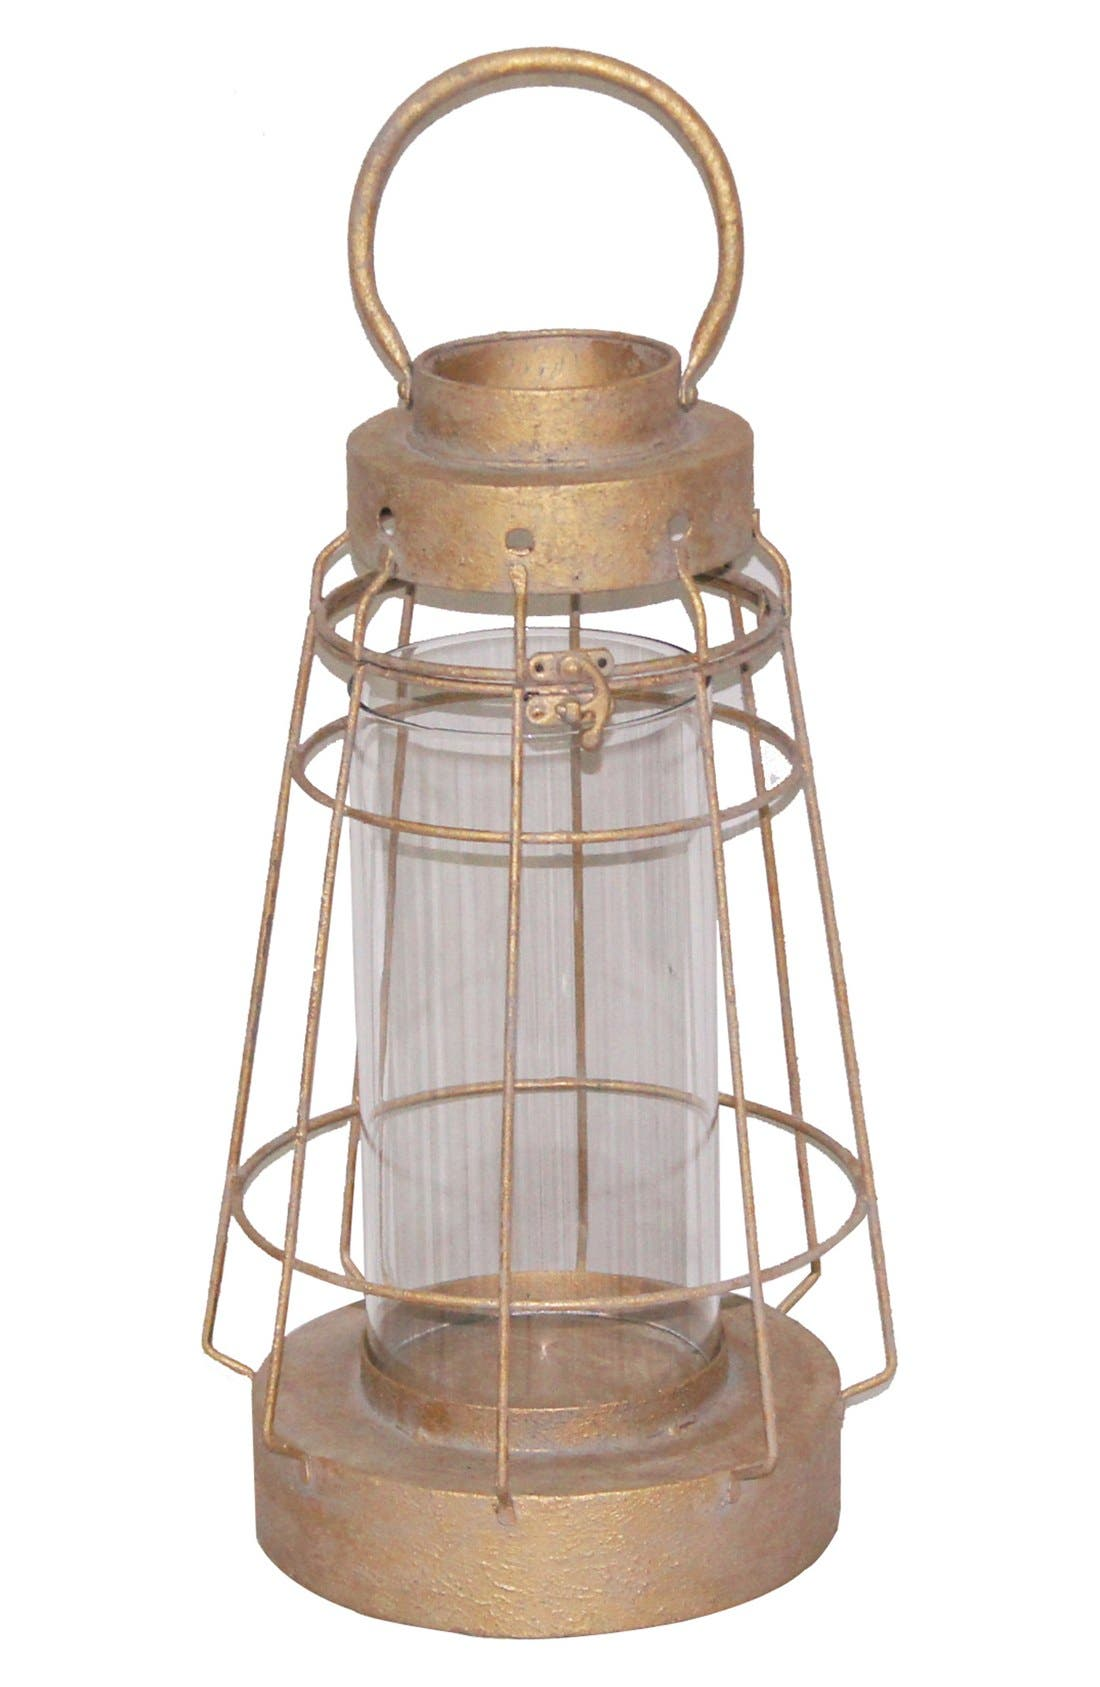 Main Image - Creative Co-Op Wood & Metal Lantern Candle Holder